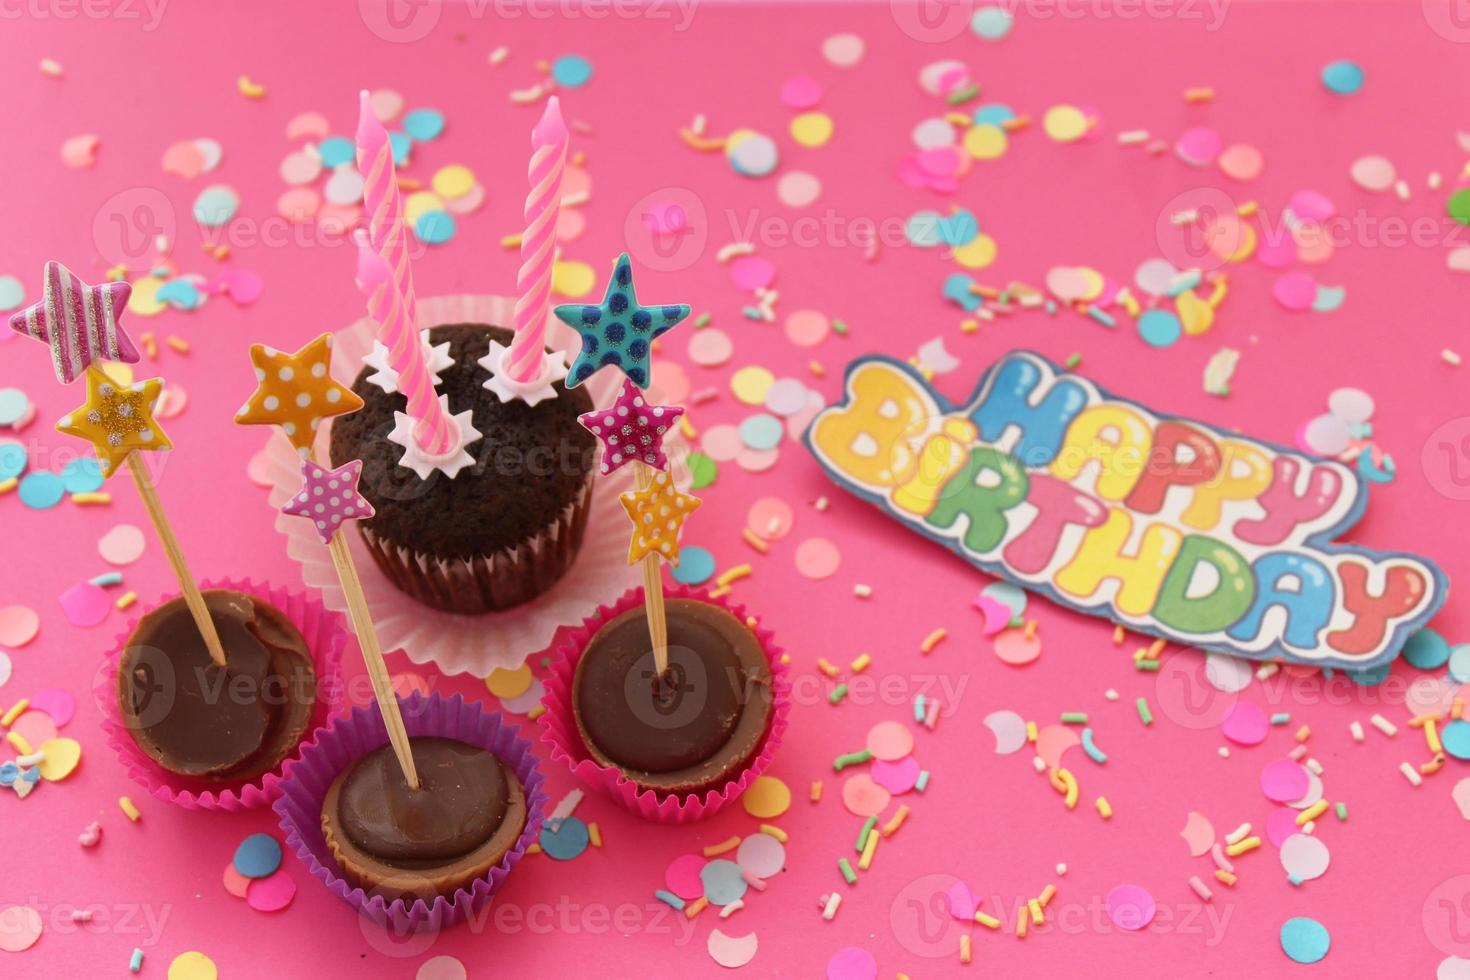 Cupcakes on pink confetti background - happy birthday card photo